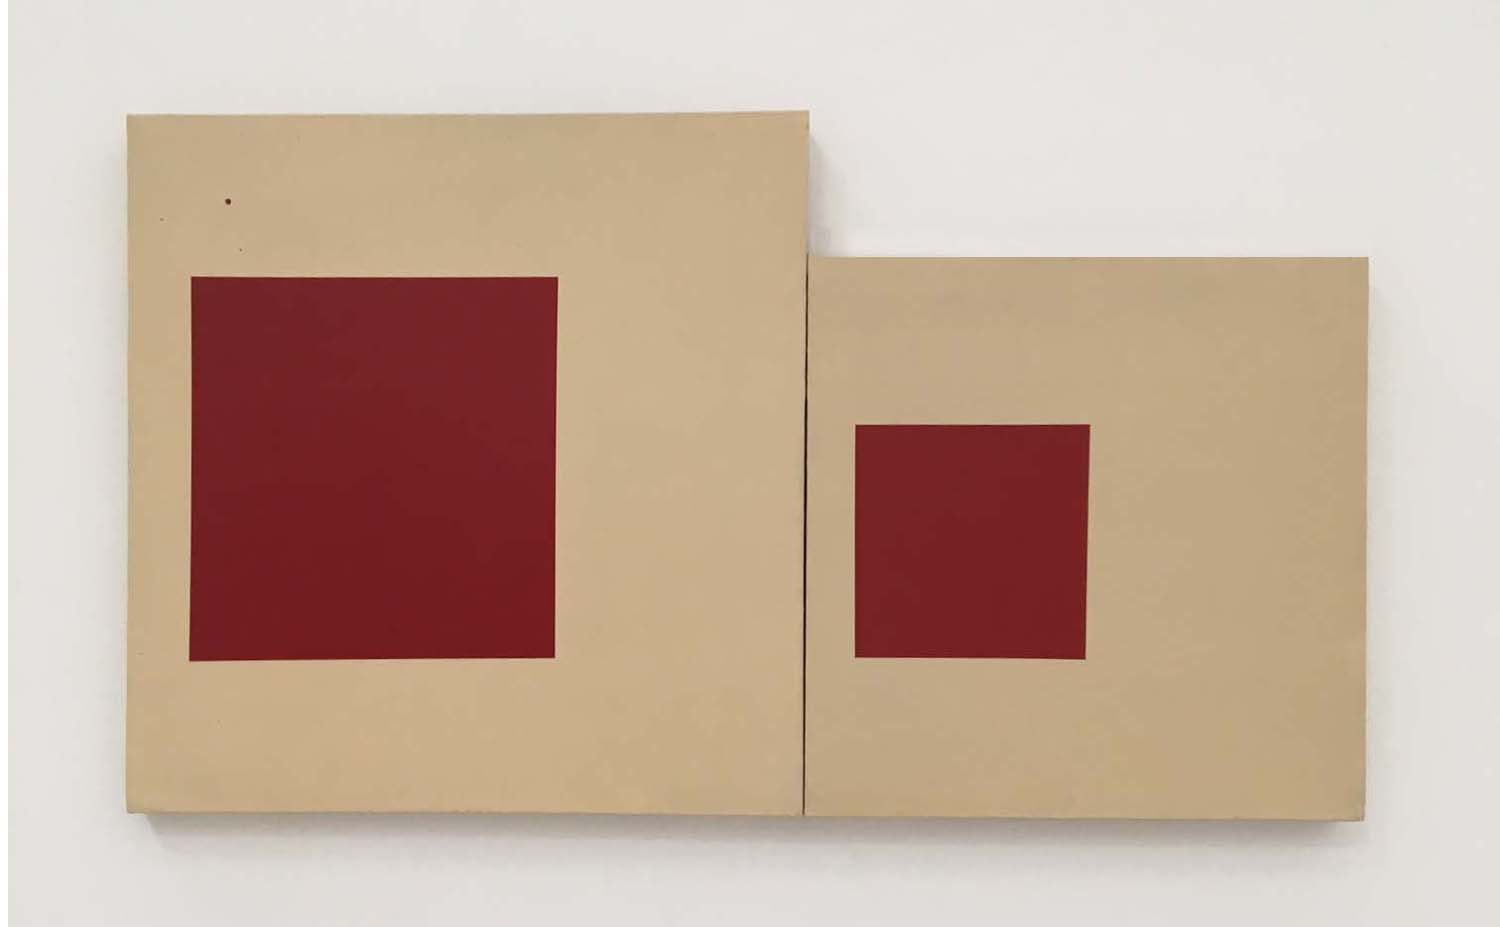 Mary Heilman, The Red Square, 1978